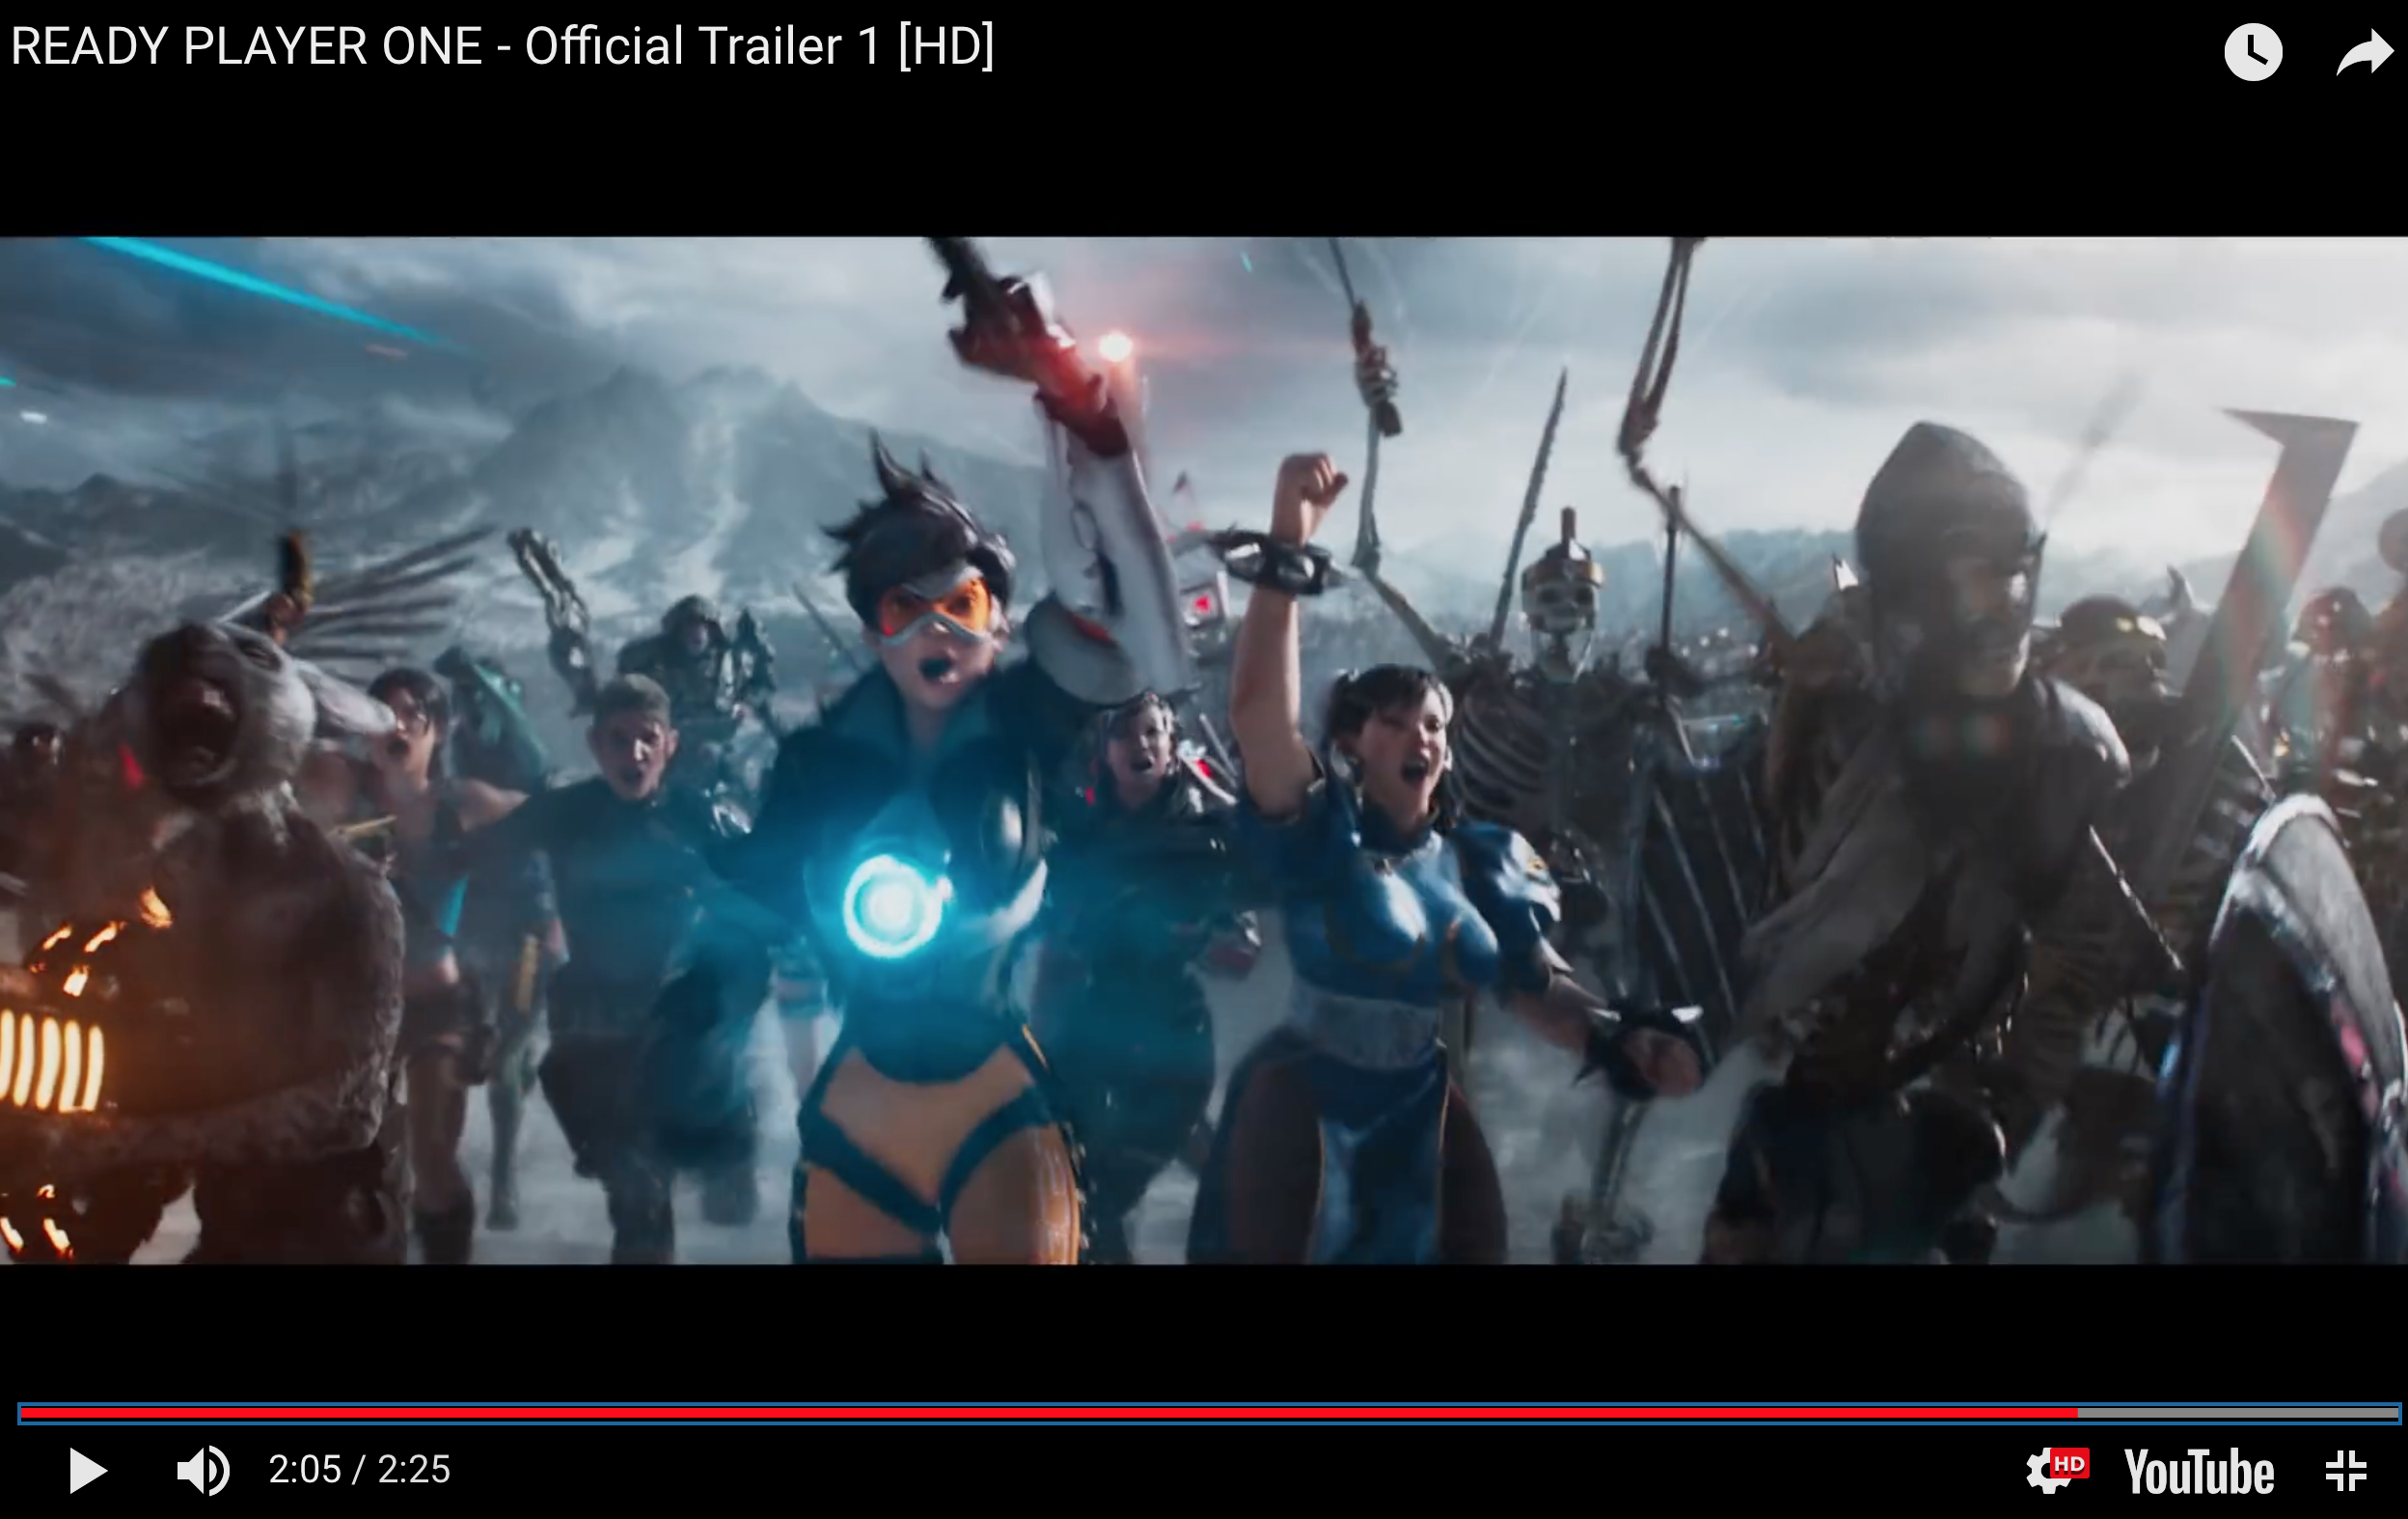 Télécharger photo ready player one overwatch png